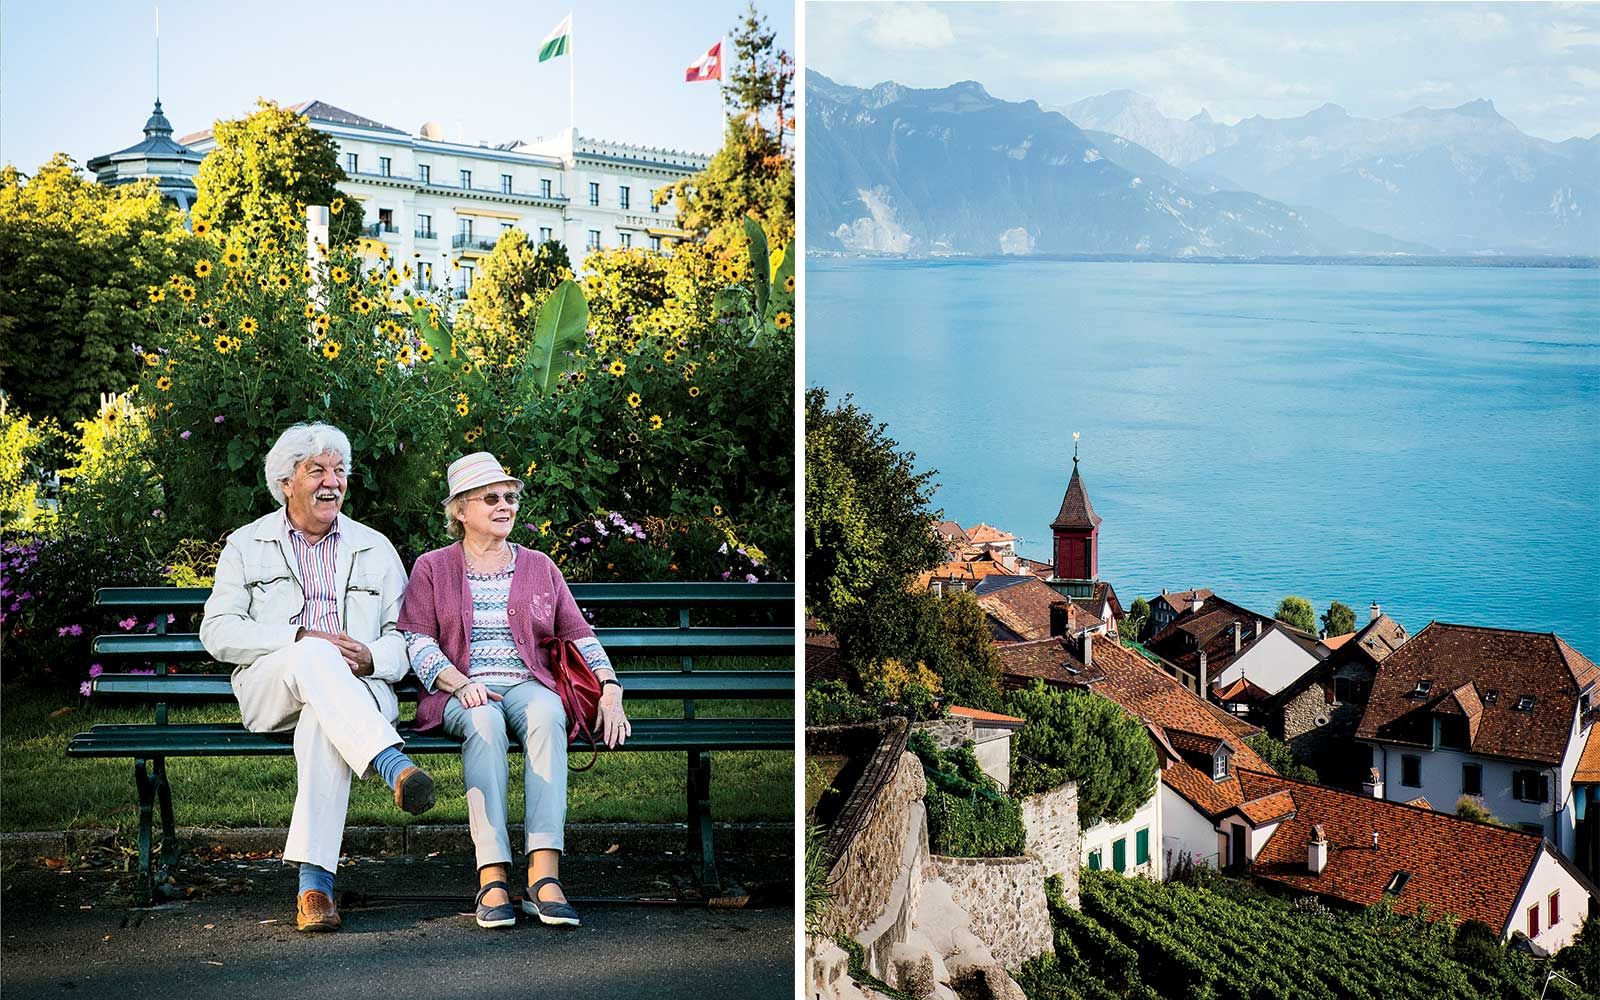 Scenes from Switzerland's wine region